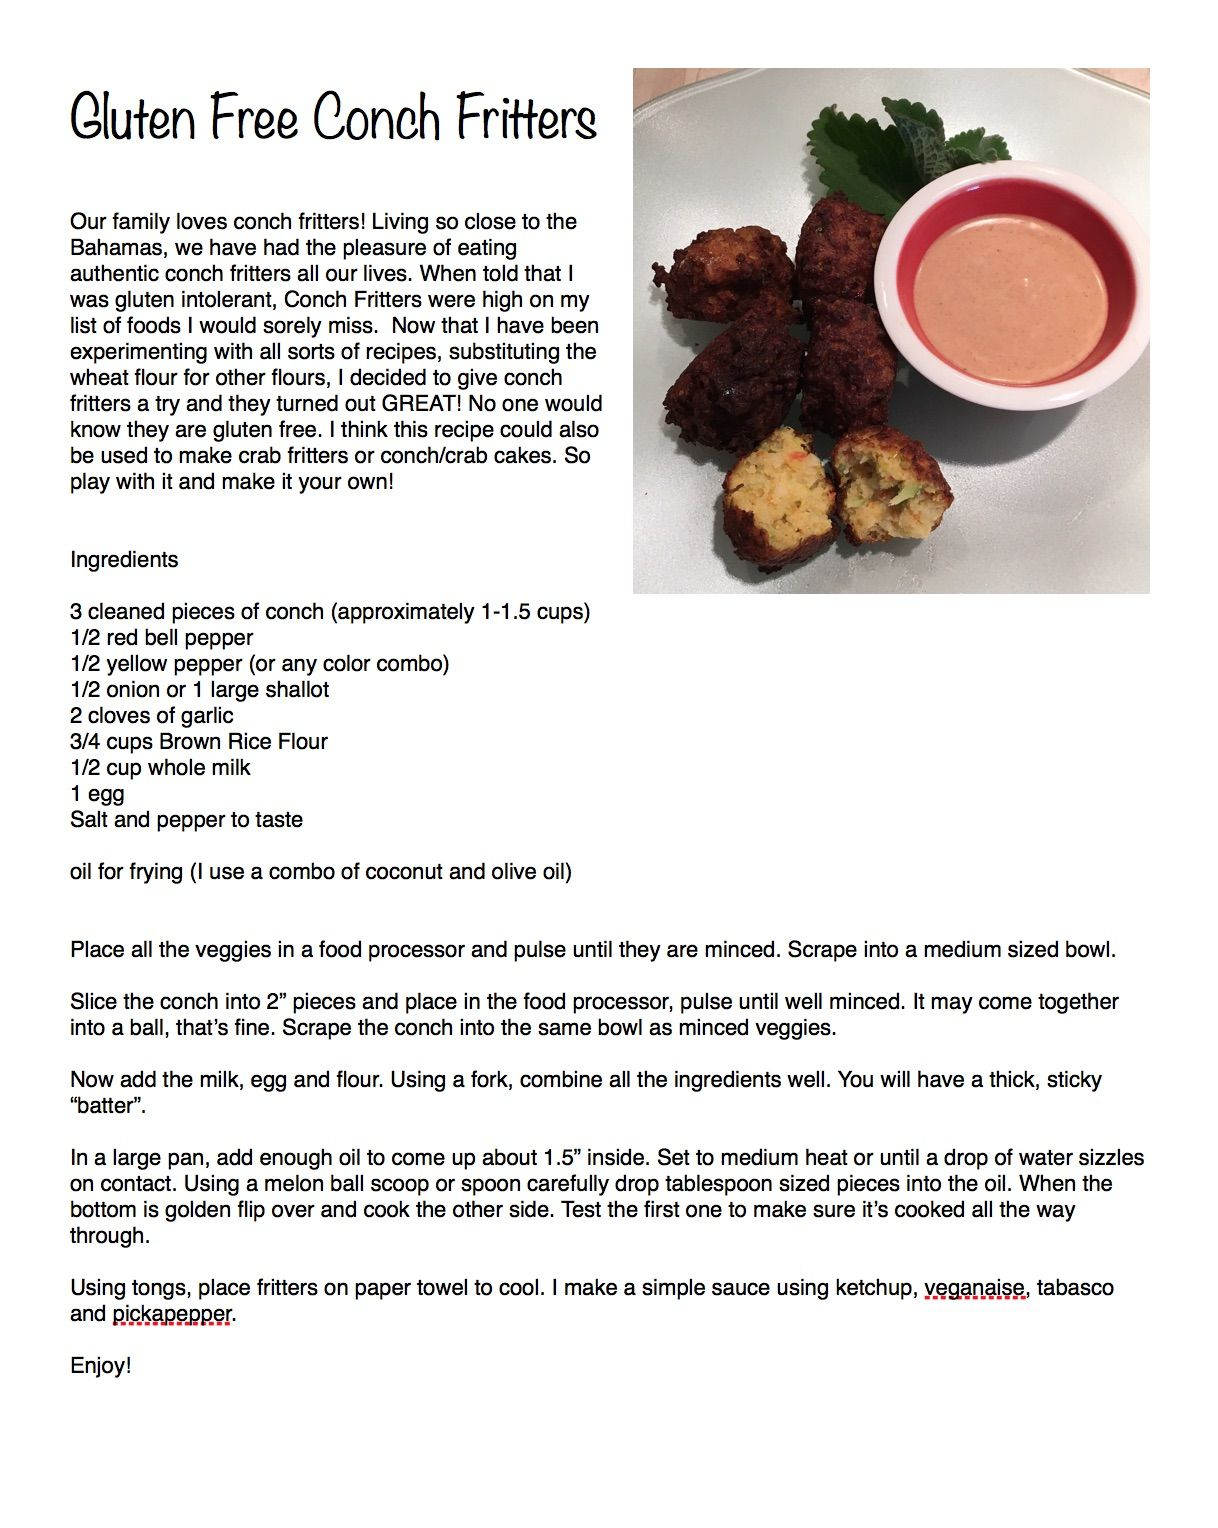 My version of GlutenFree Conch Fritters, Delicious